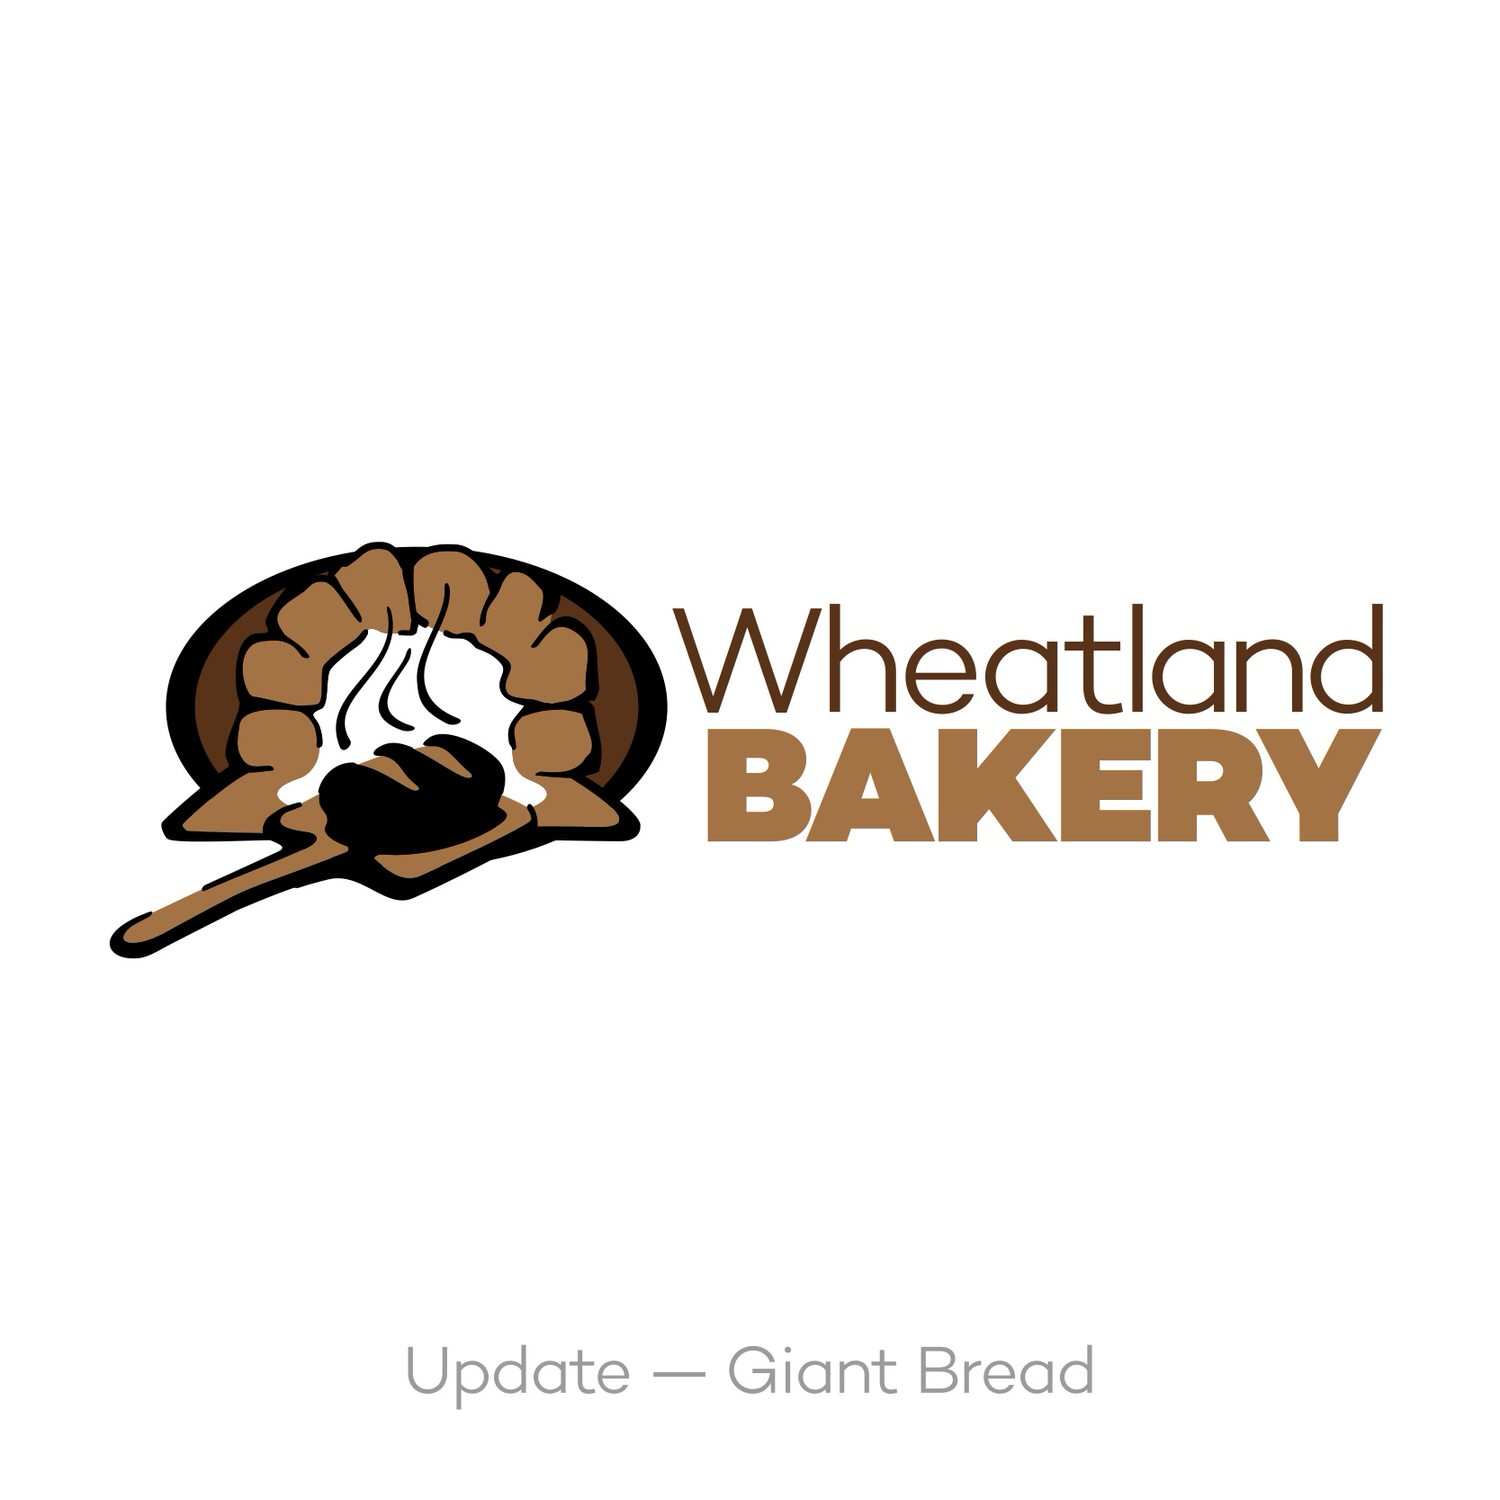 Wheatland-Logo-Options-12.jpg